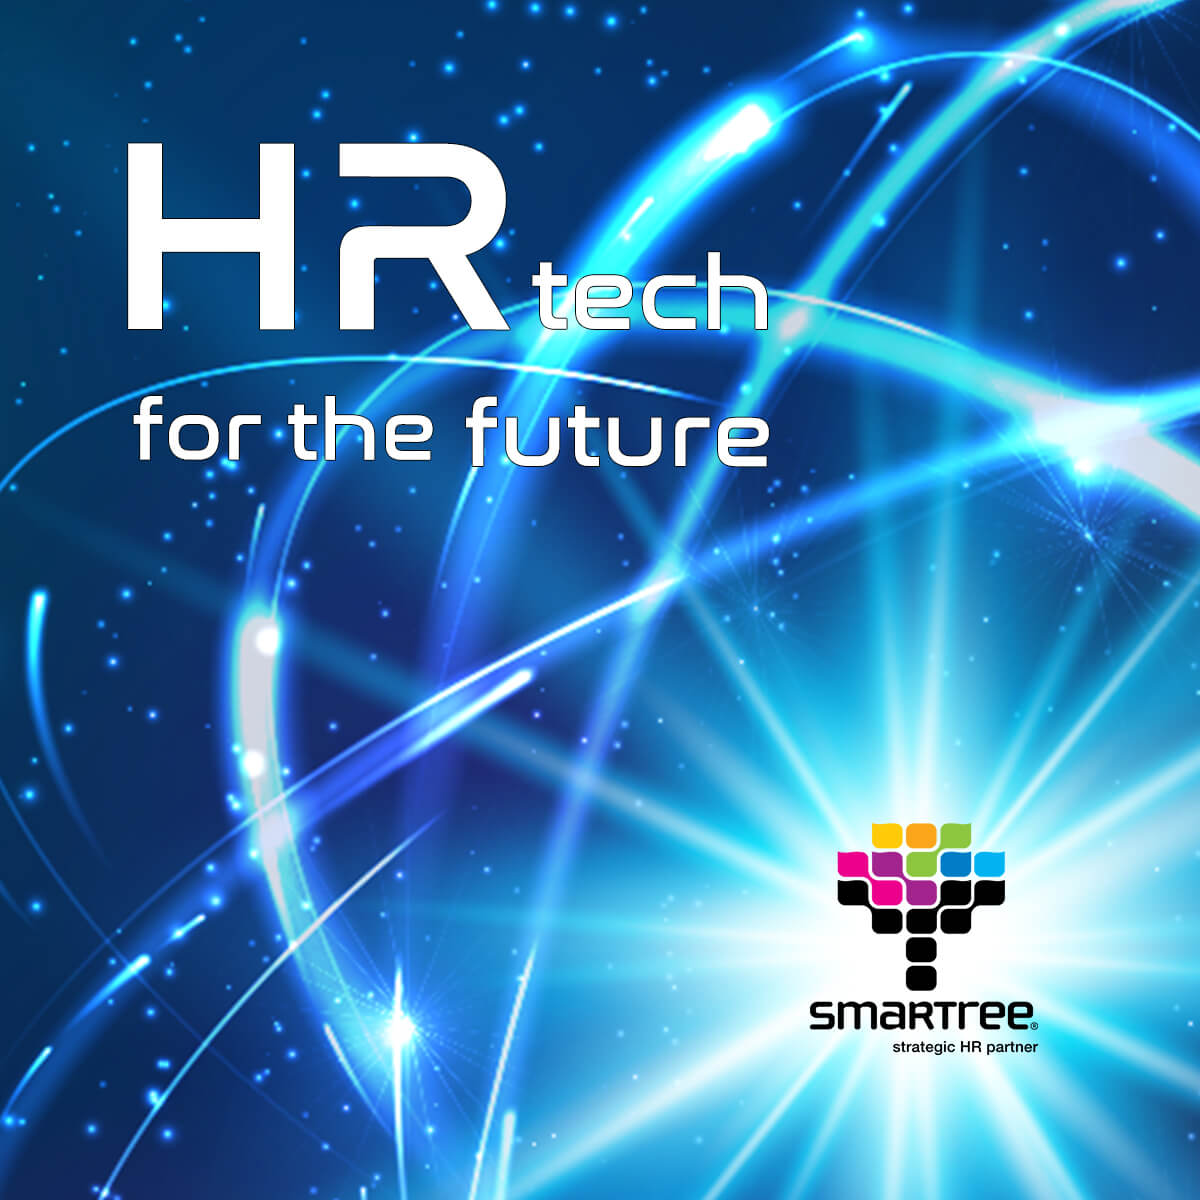 smartree hr tech for the future